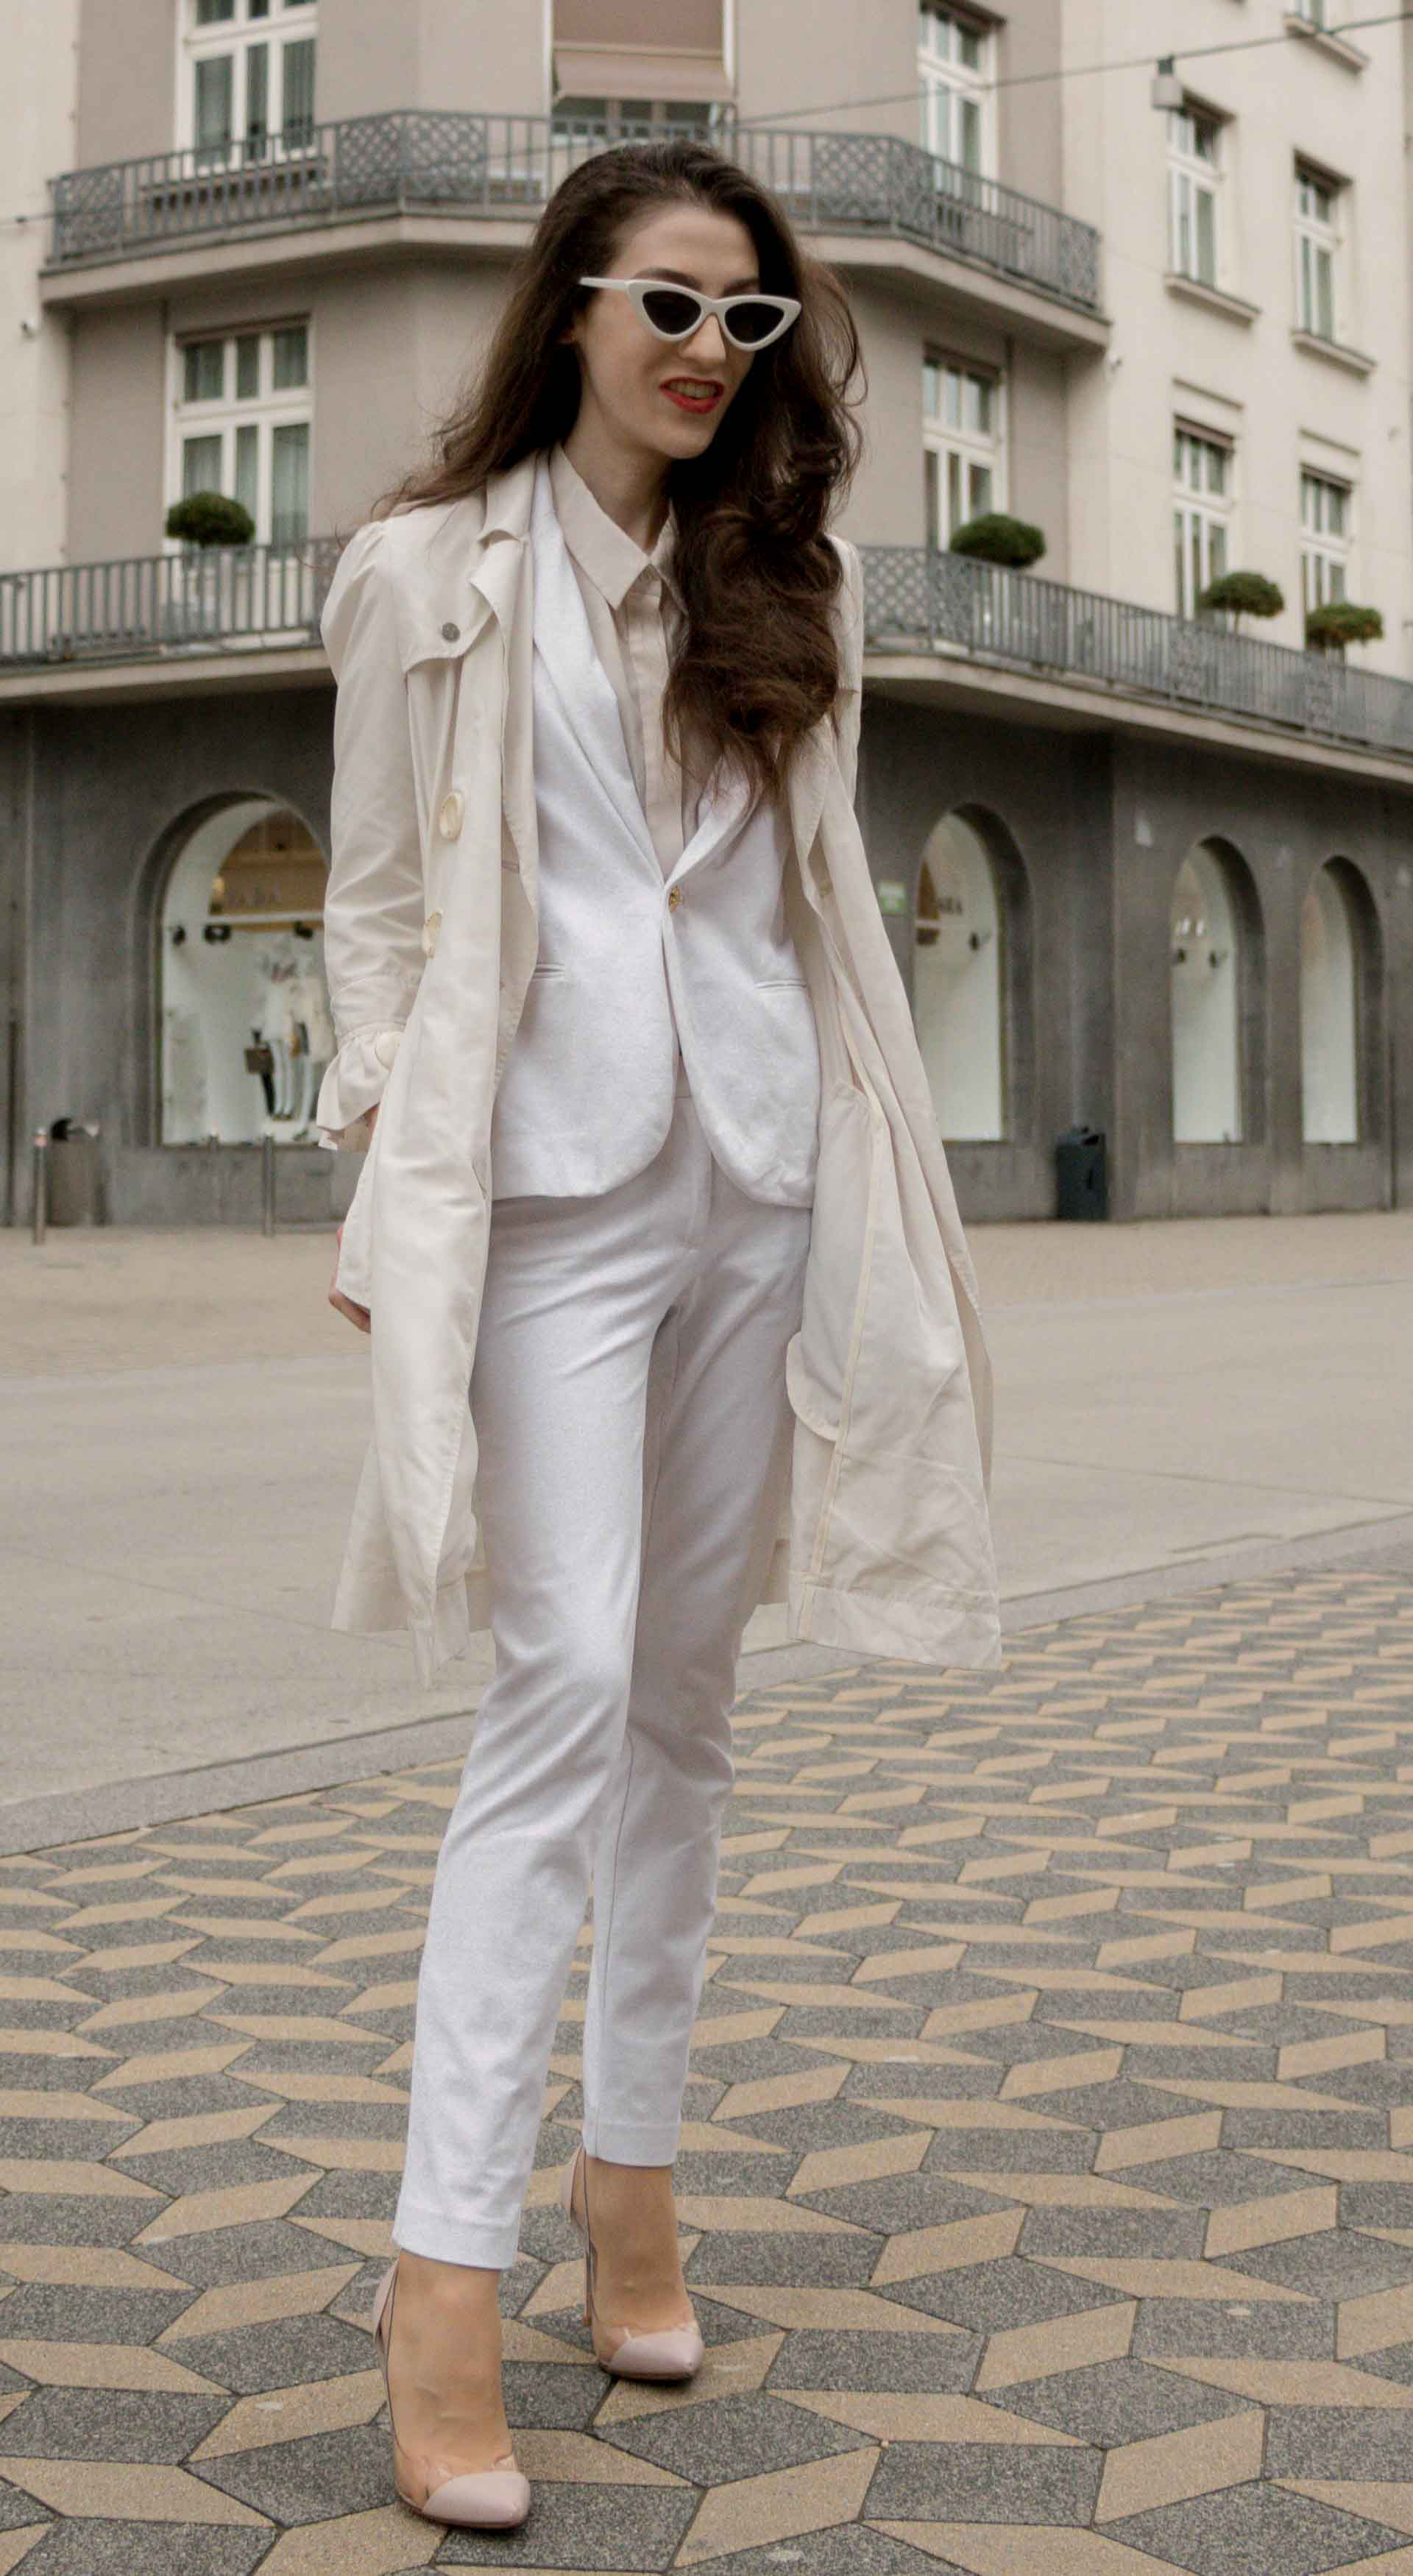 Veronika Lipar Fashion Blogger of Brunette from Wall Street dressed in formal business white suit from Juicy Couture, long white trench coat with ruffled sleeves, Adam Selman x Lespecs white lolita sunglasses, blush Gianvito Rossi plexi pumps while standing on the Slovenska cesta street in Ljubljana